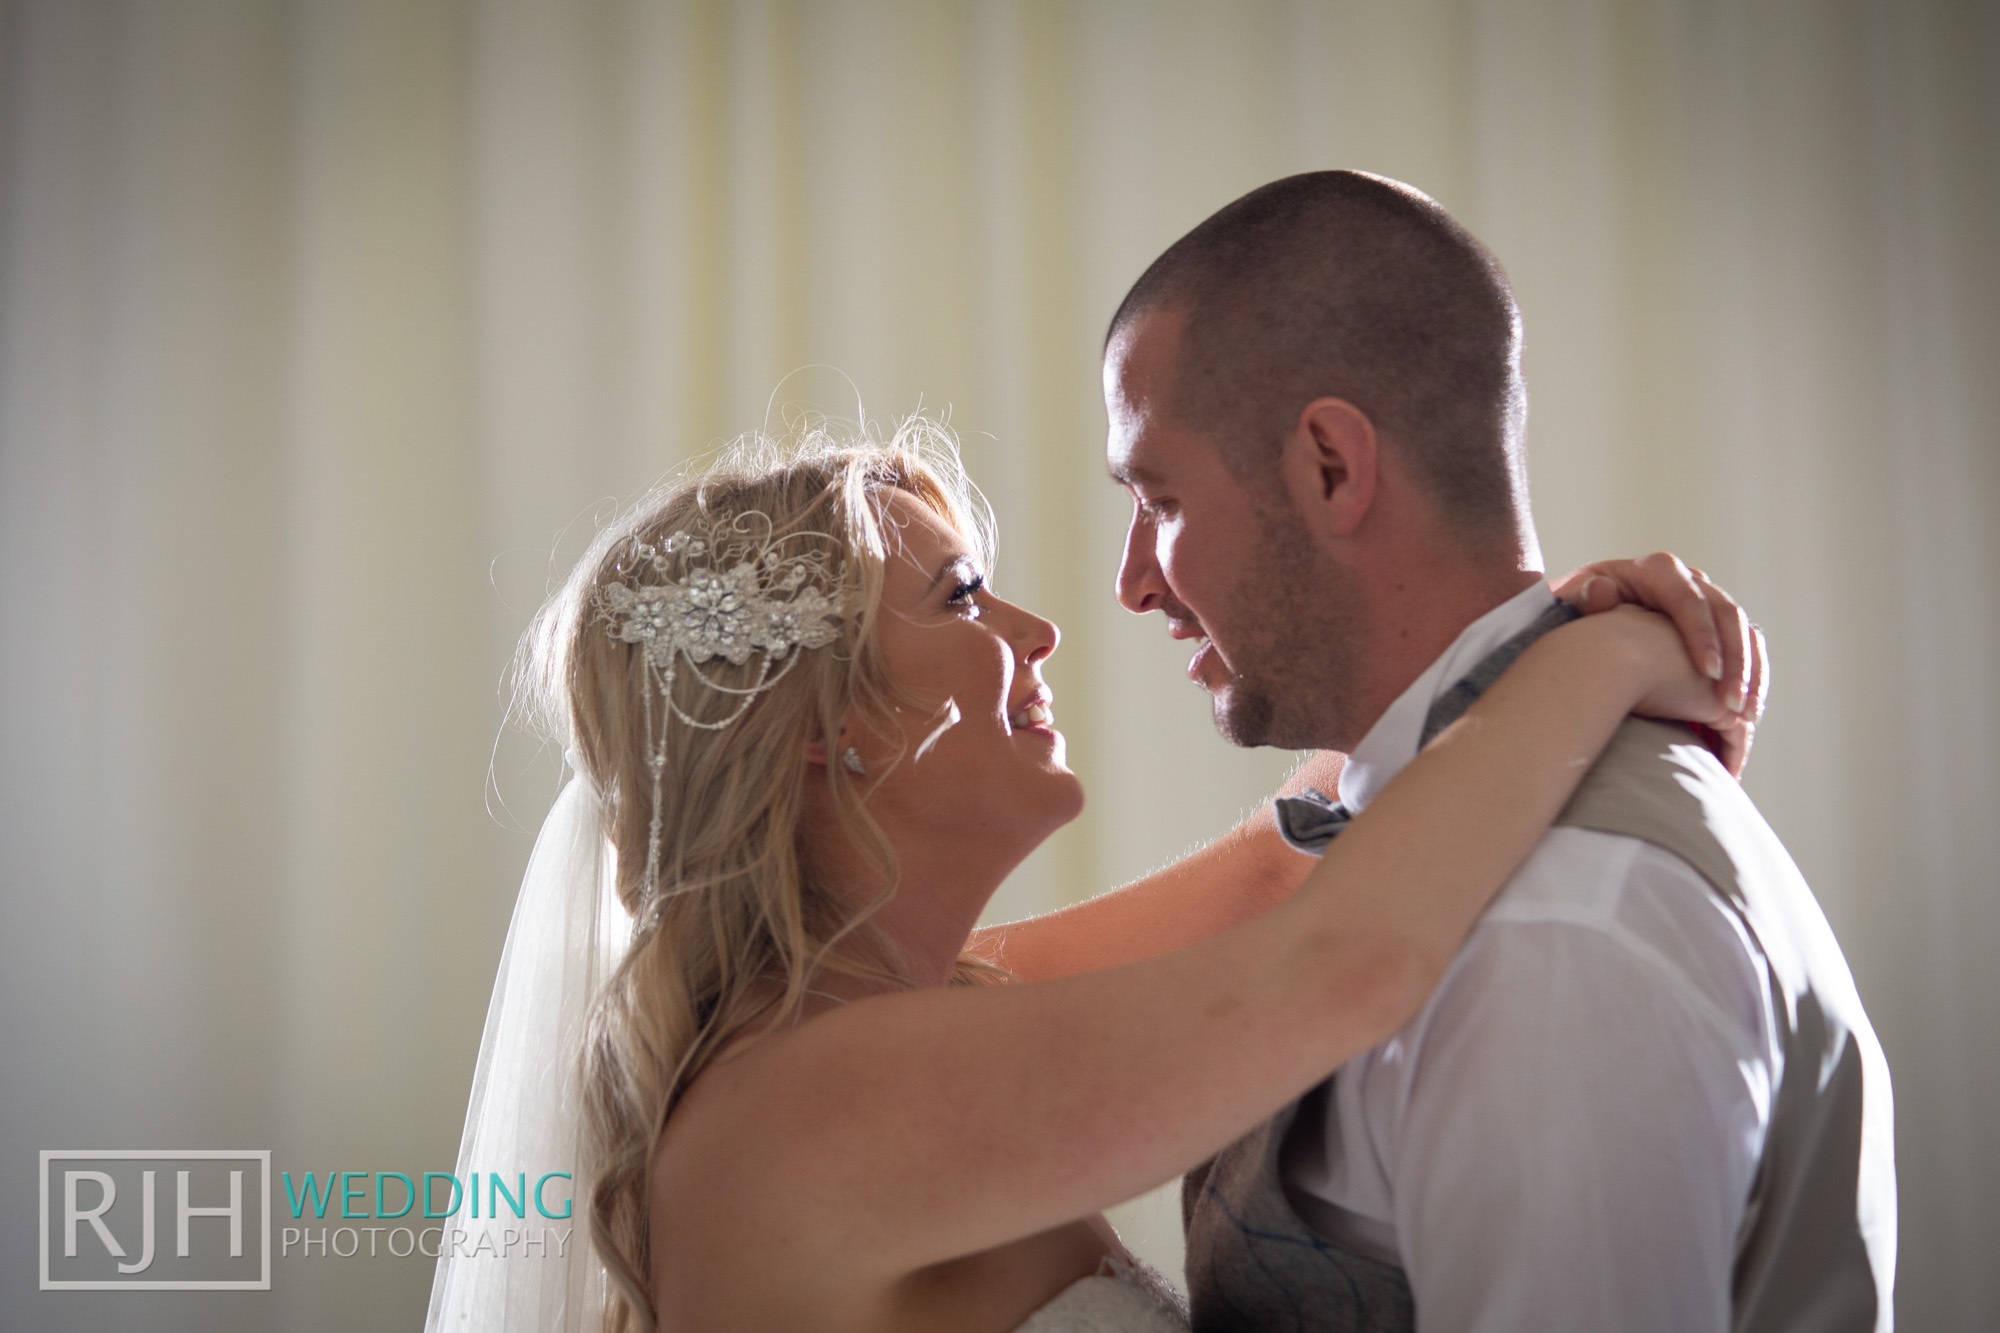 Ringwwod Hall Wedding Photography_Lacey Wedding Preview_072_IMG_7326.jpg